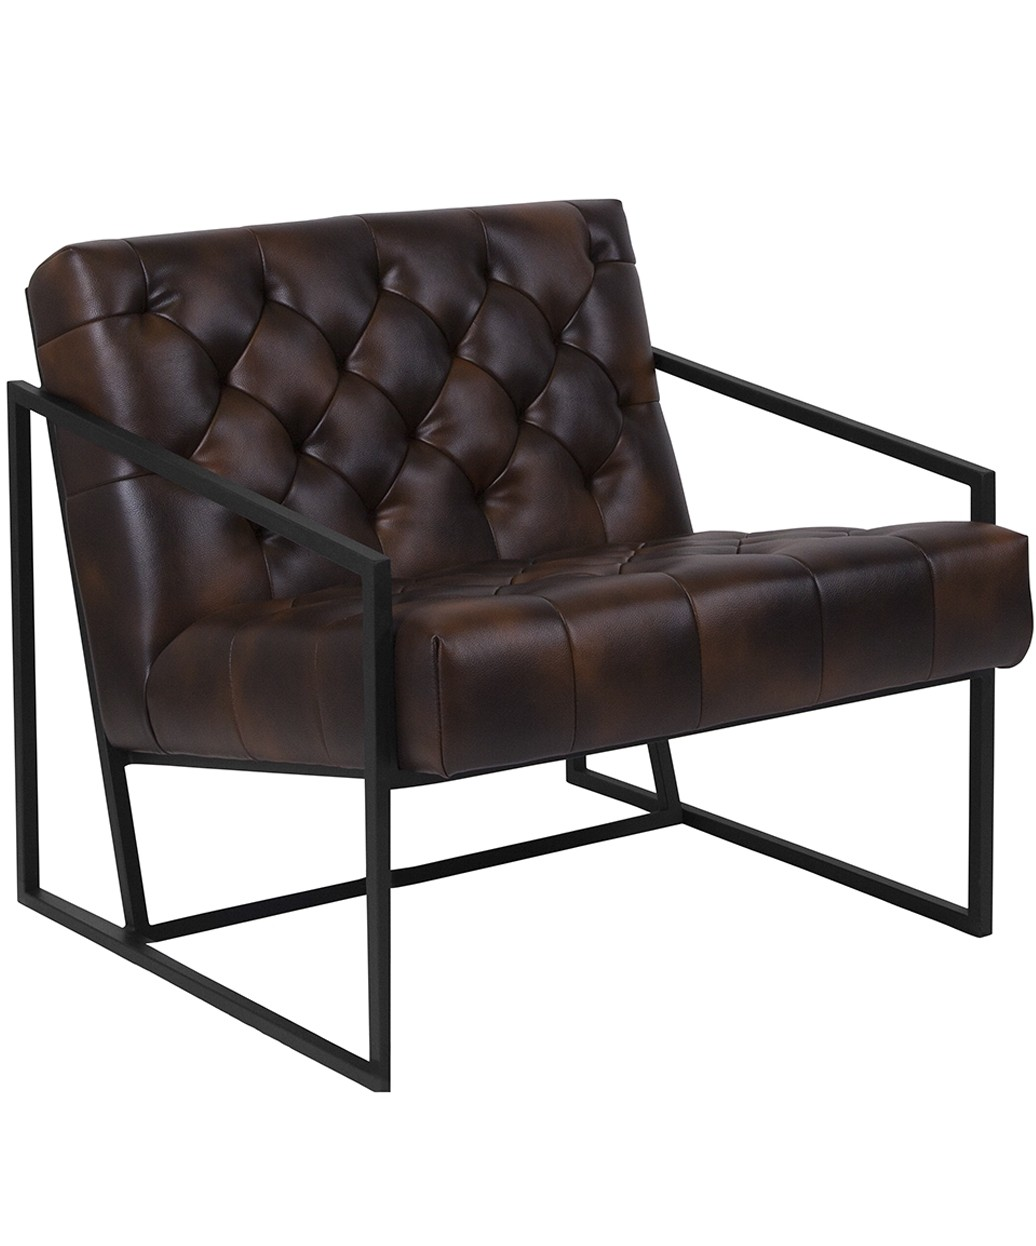 Modern Leather Chairs Keane Tufted Leather Chair W Metal Frame